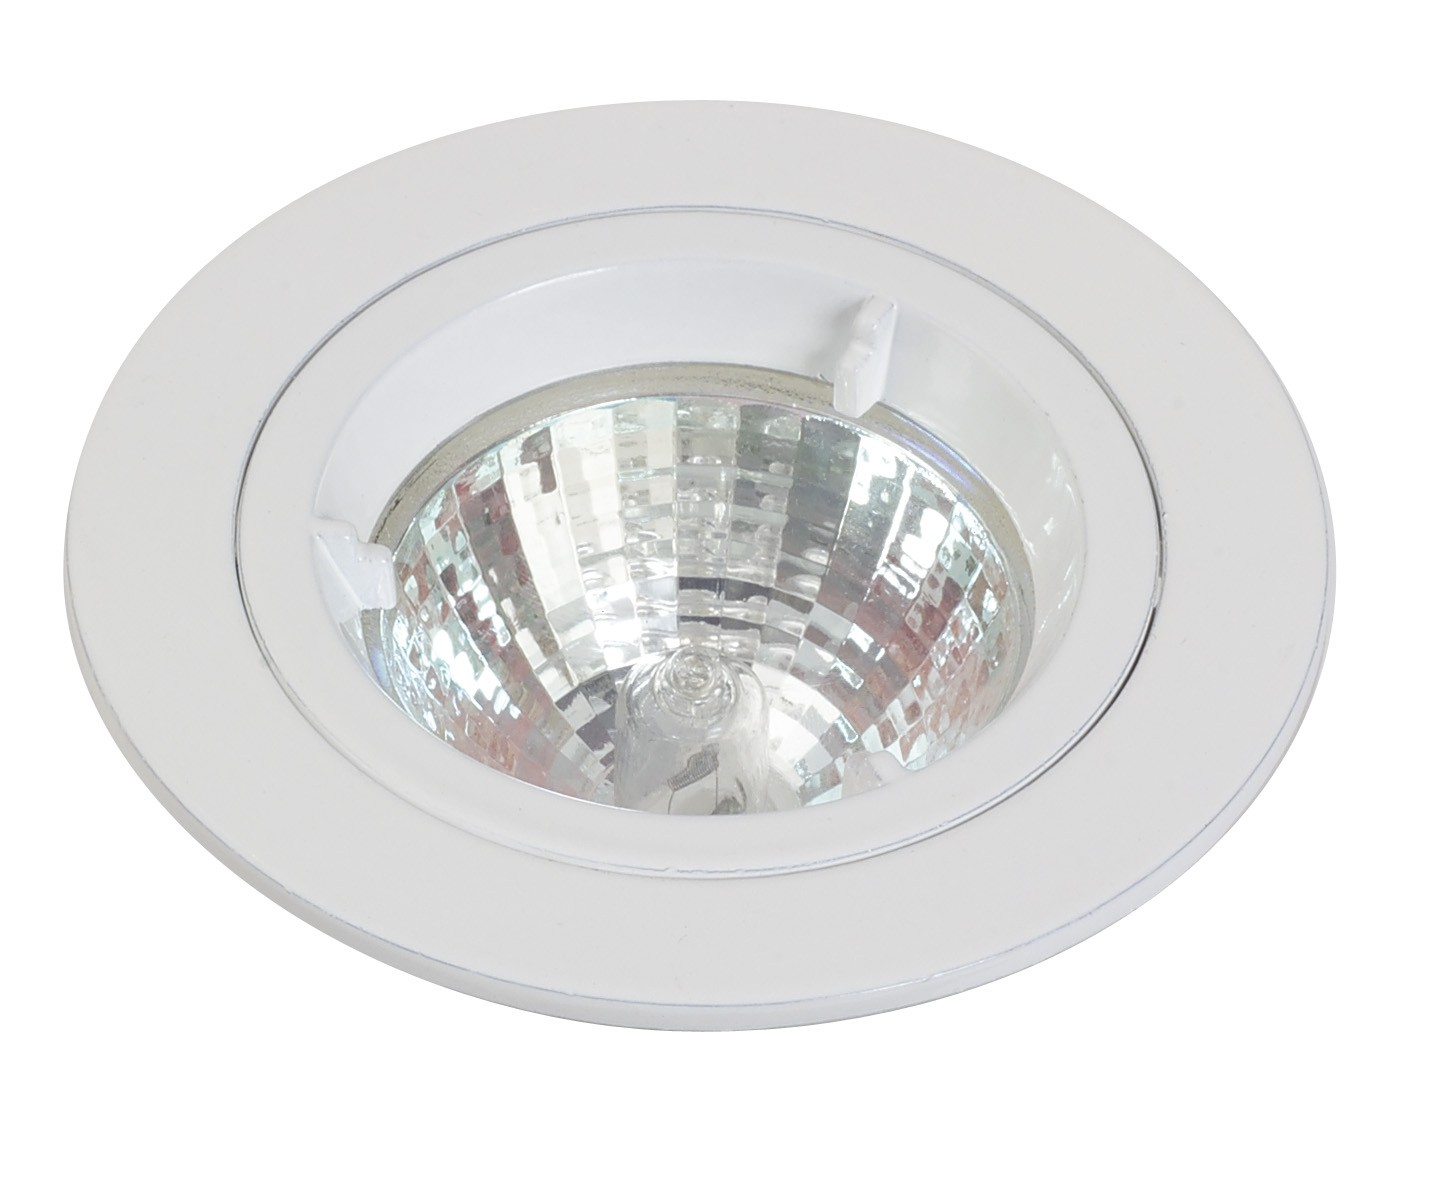 Ceiling downlight mains cast fixed